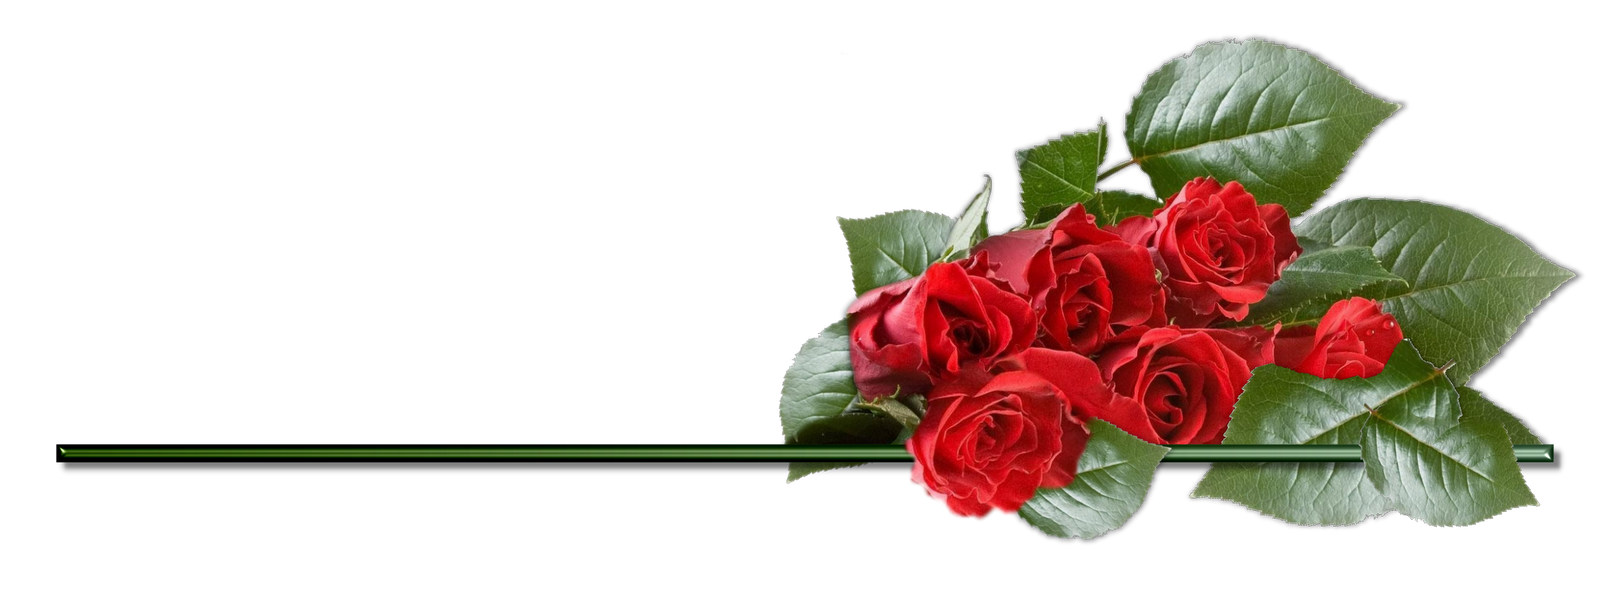 Rose Png - Page 2 - Free Icons and PNG Backgrounds for Transparent Png Images Roses  585eri